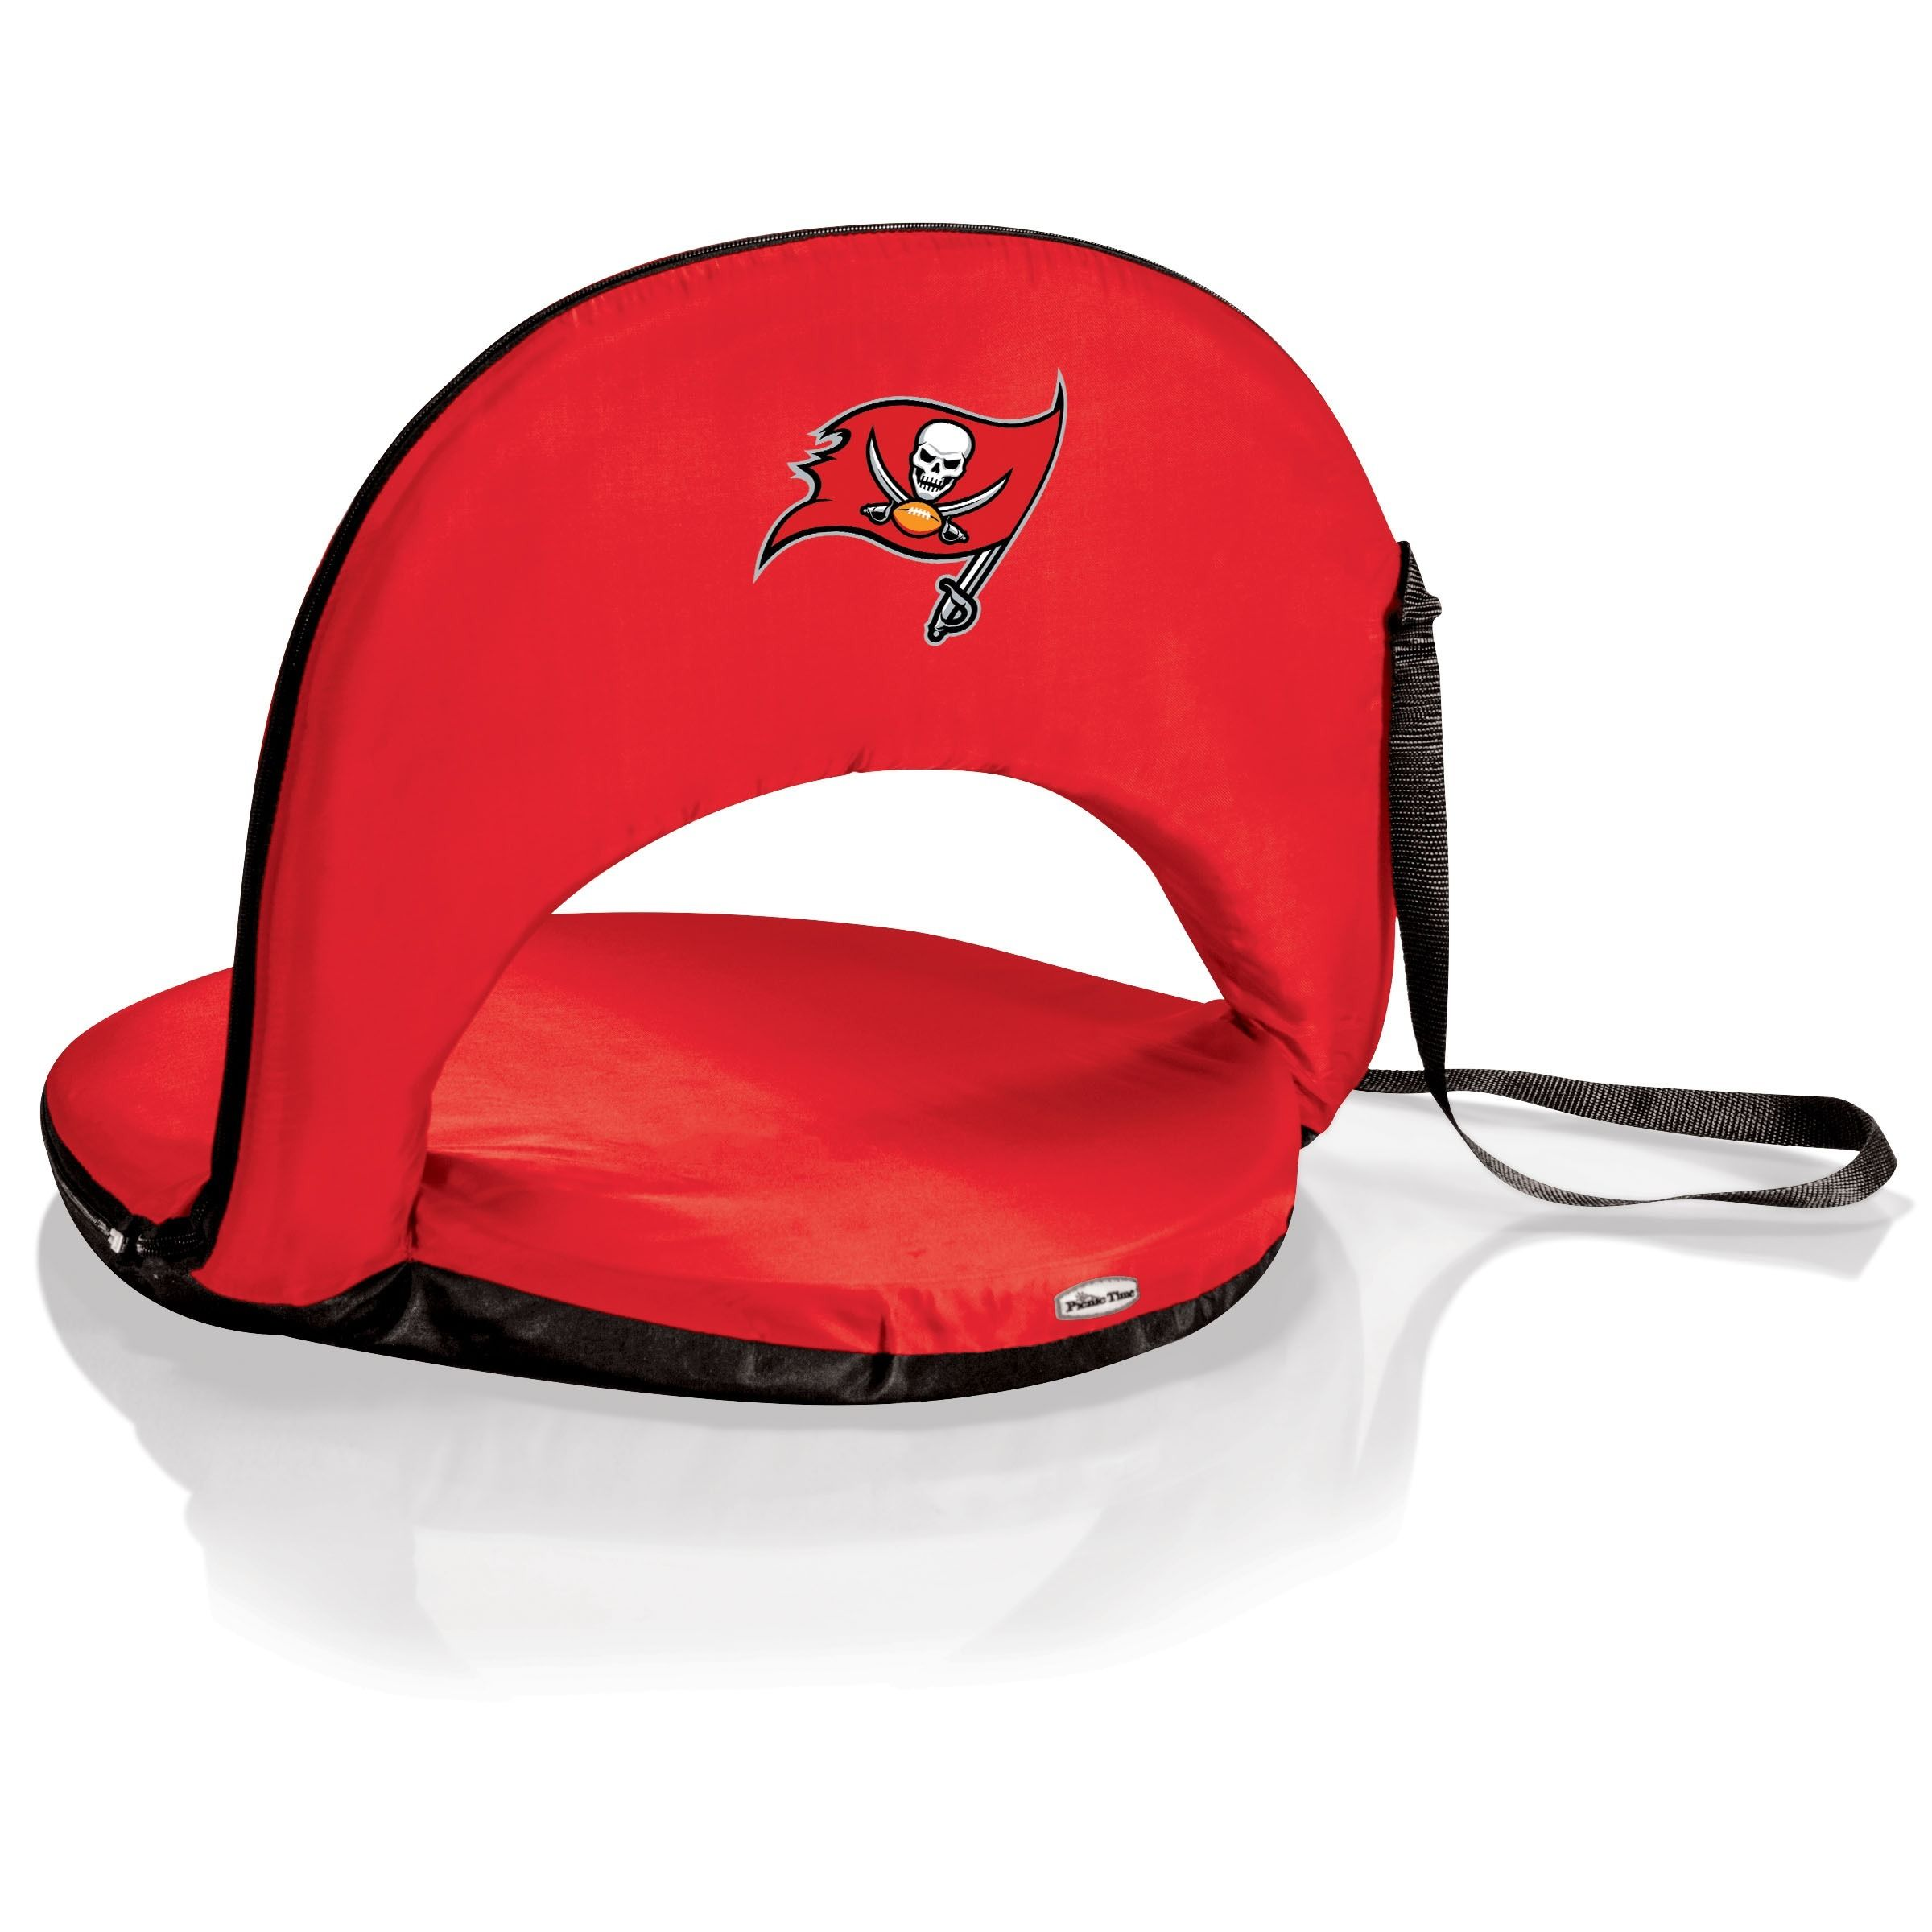 Picnic Time Oniva Tampa Bay Buccaneers Portable Seat